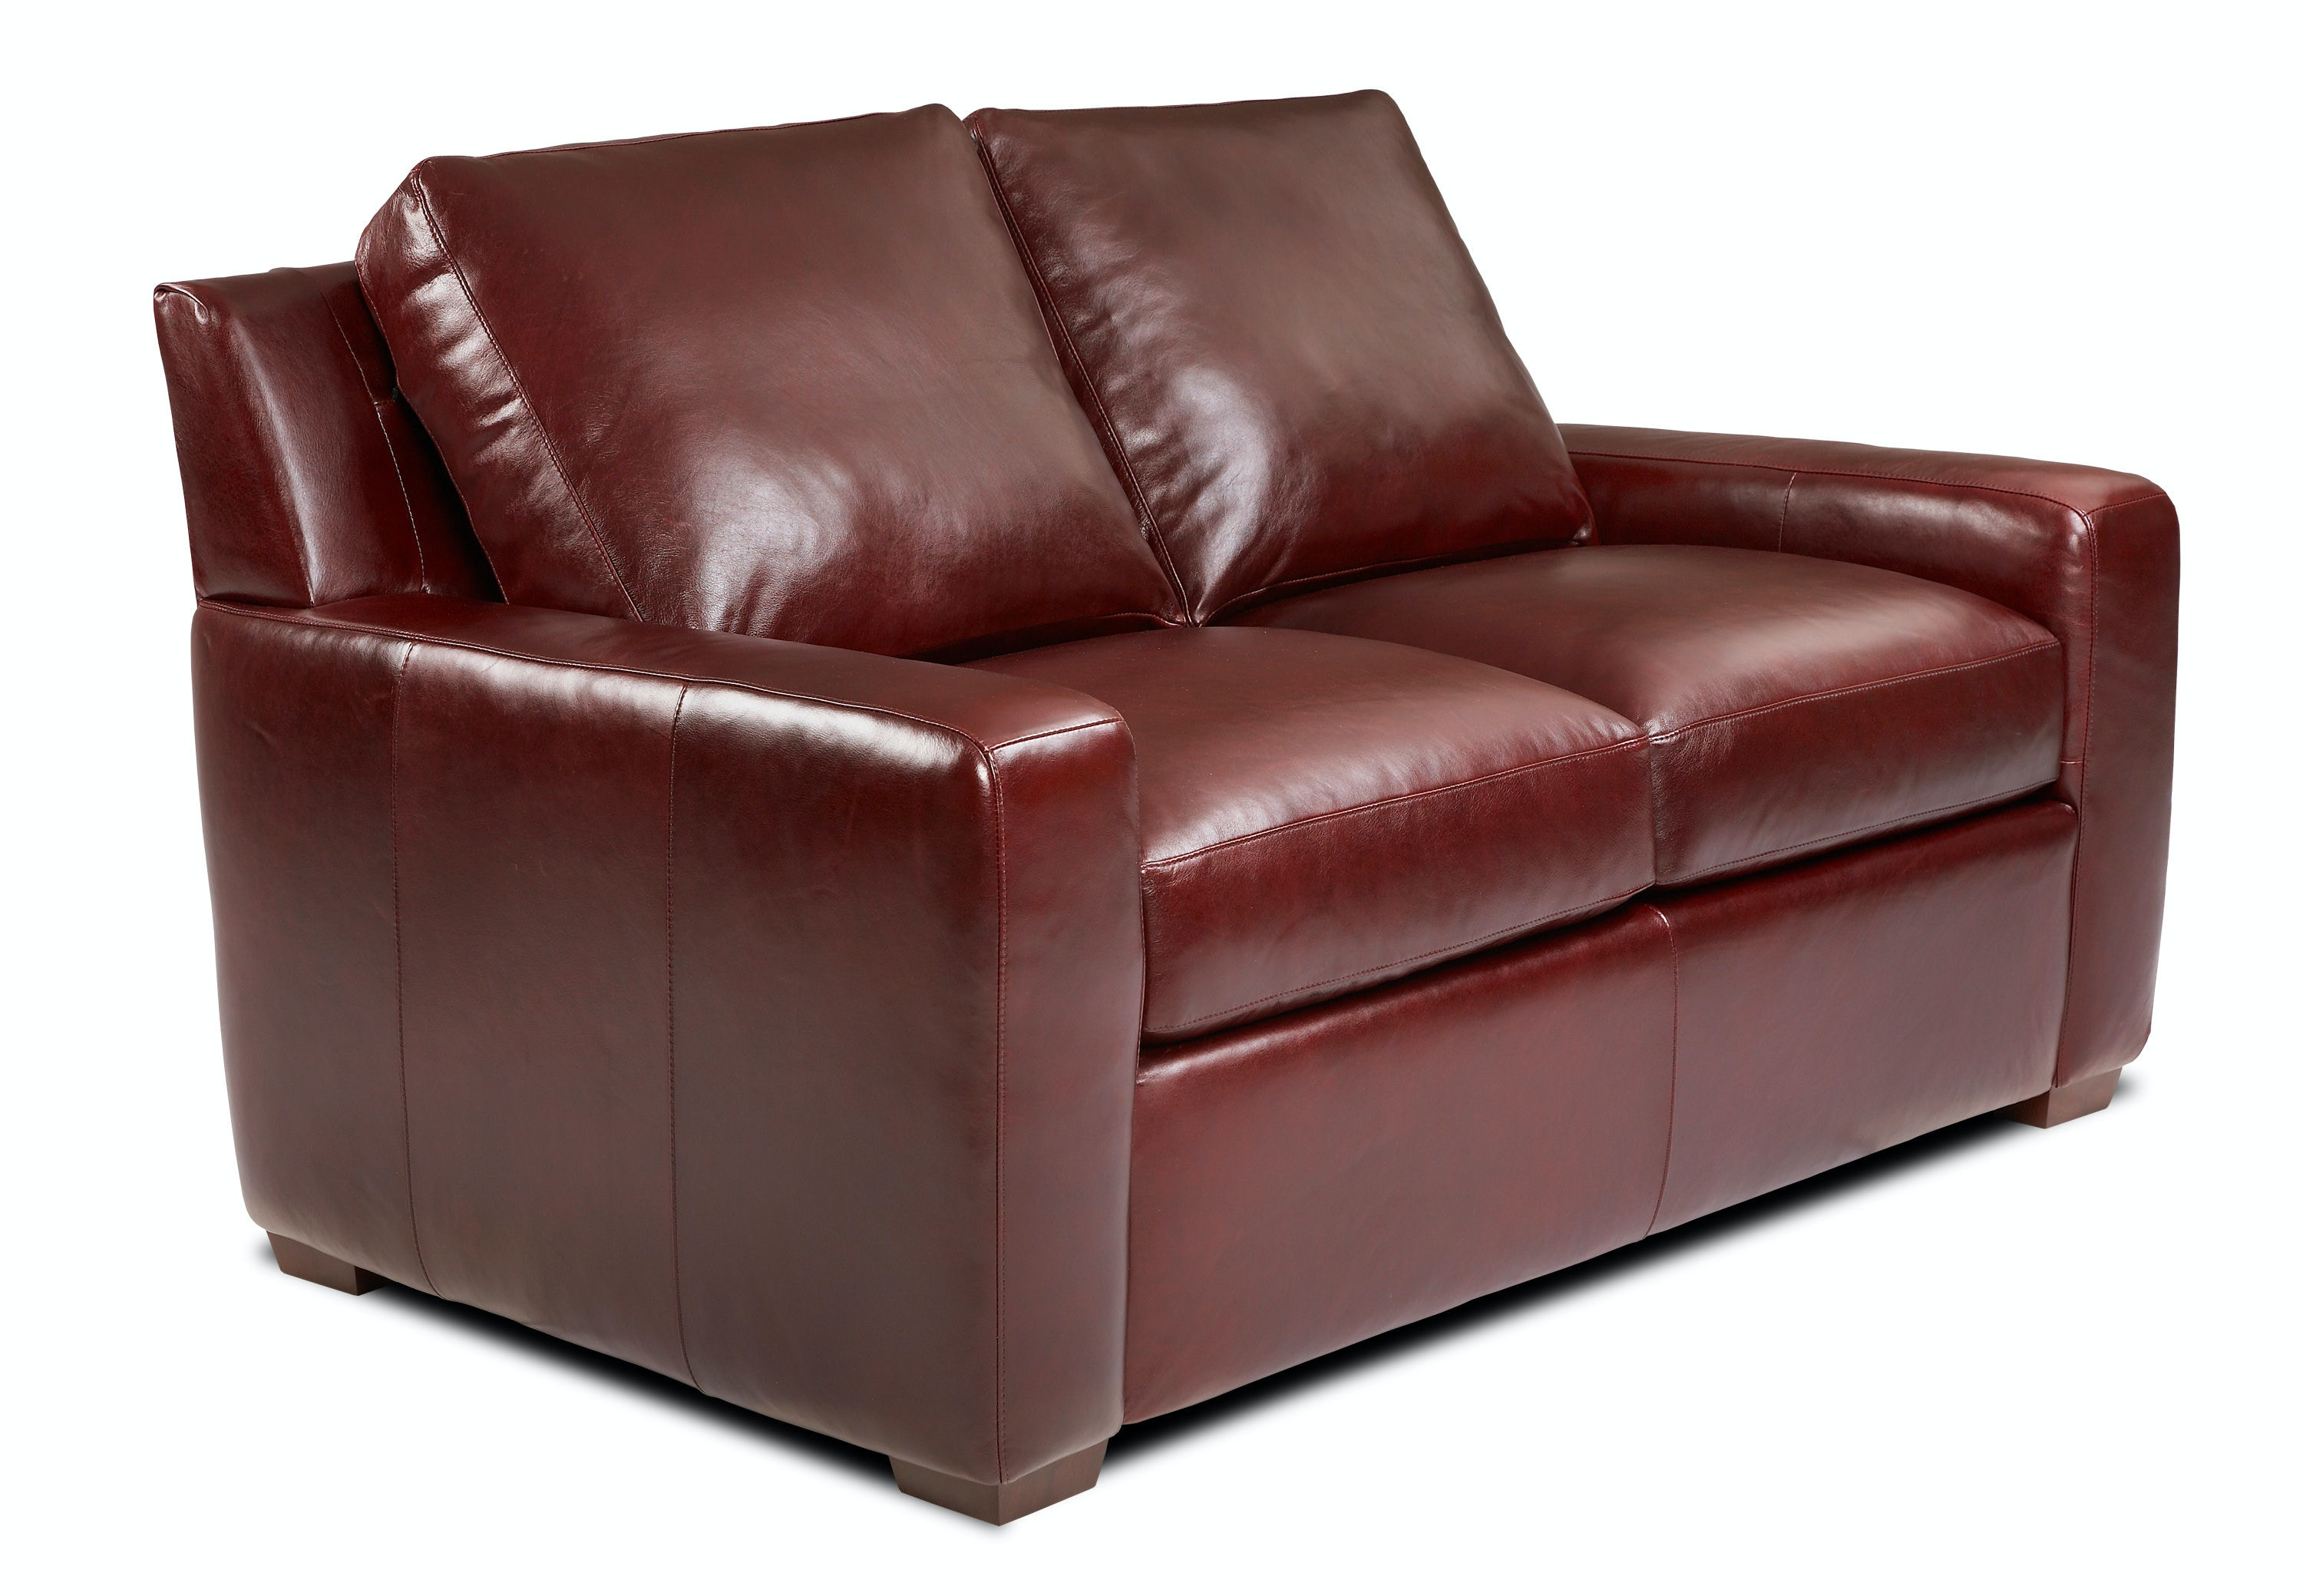 American Leather Living Room Two Cushion Loveseat Lis Lvs St